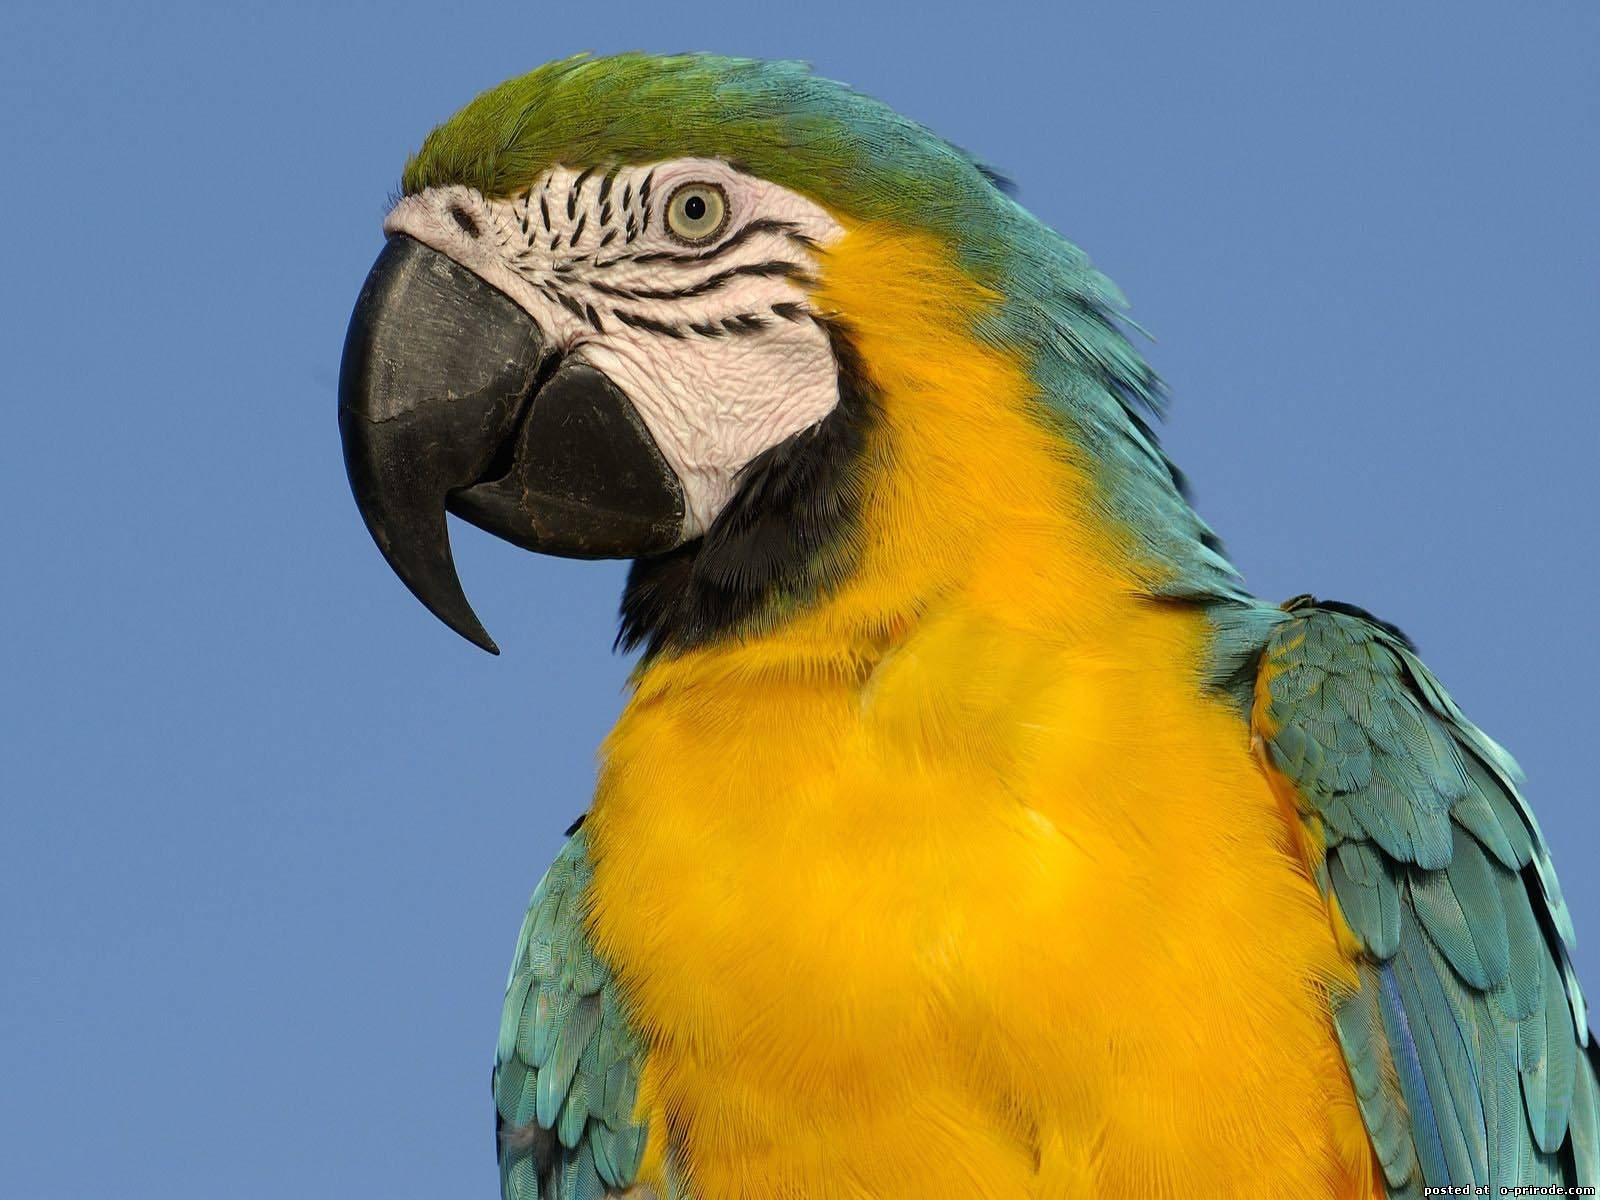 Blueandyellow Macaw Ara ararauna  Parrot Encyclopedia